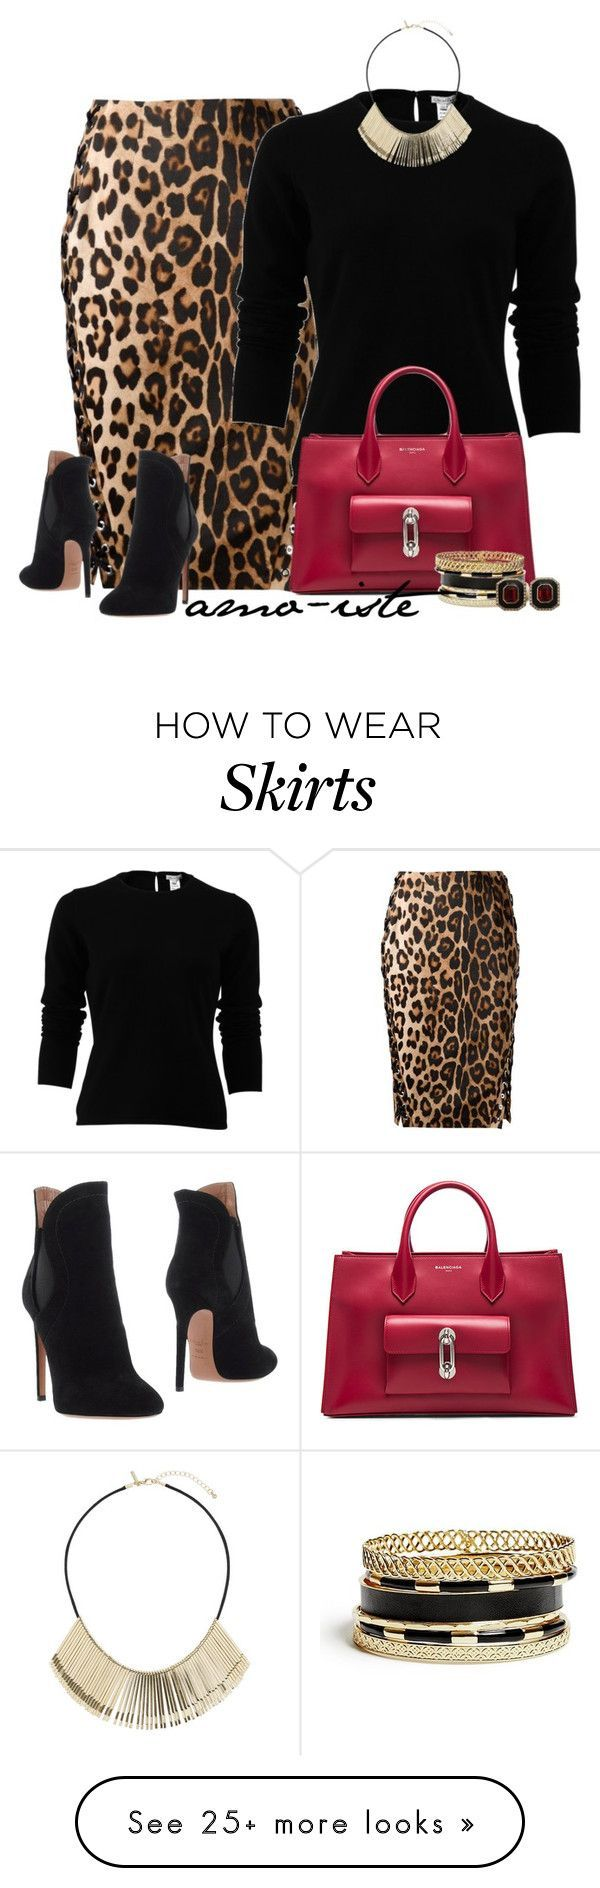 """Leopard Skirt"" by amo-iste on Polyvore featuring Altuzarra, Oscar de la Renta, Balenciaga, GUESS, Ciner, Topshop and Alaïa"